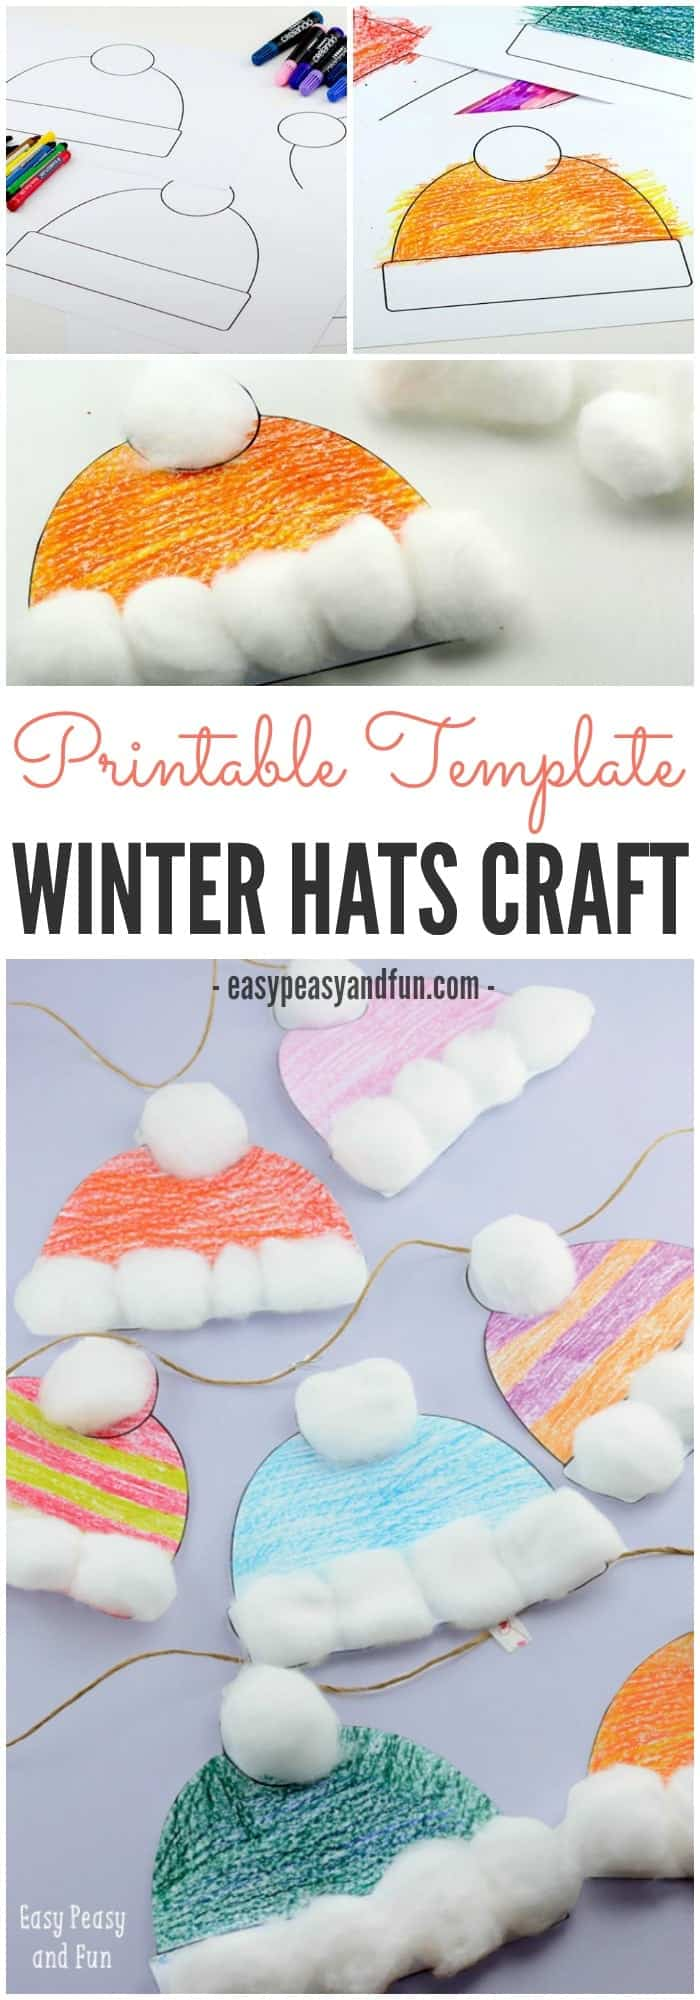 Christmas Crafts For Kids To Make – 18 DIY Easy Decorations For Children. Are you looking for some fun and easy Christmas crafts for kids to make at home or in school? Here is a collection of DIY decorations you can make together with your children! #christmas #xmas #christmasdecor #christmascrafts #homedecor #crafts #diy #diyhomedecor #diycrafts #decor #kidscrafts